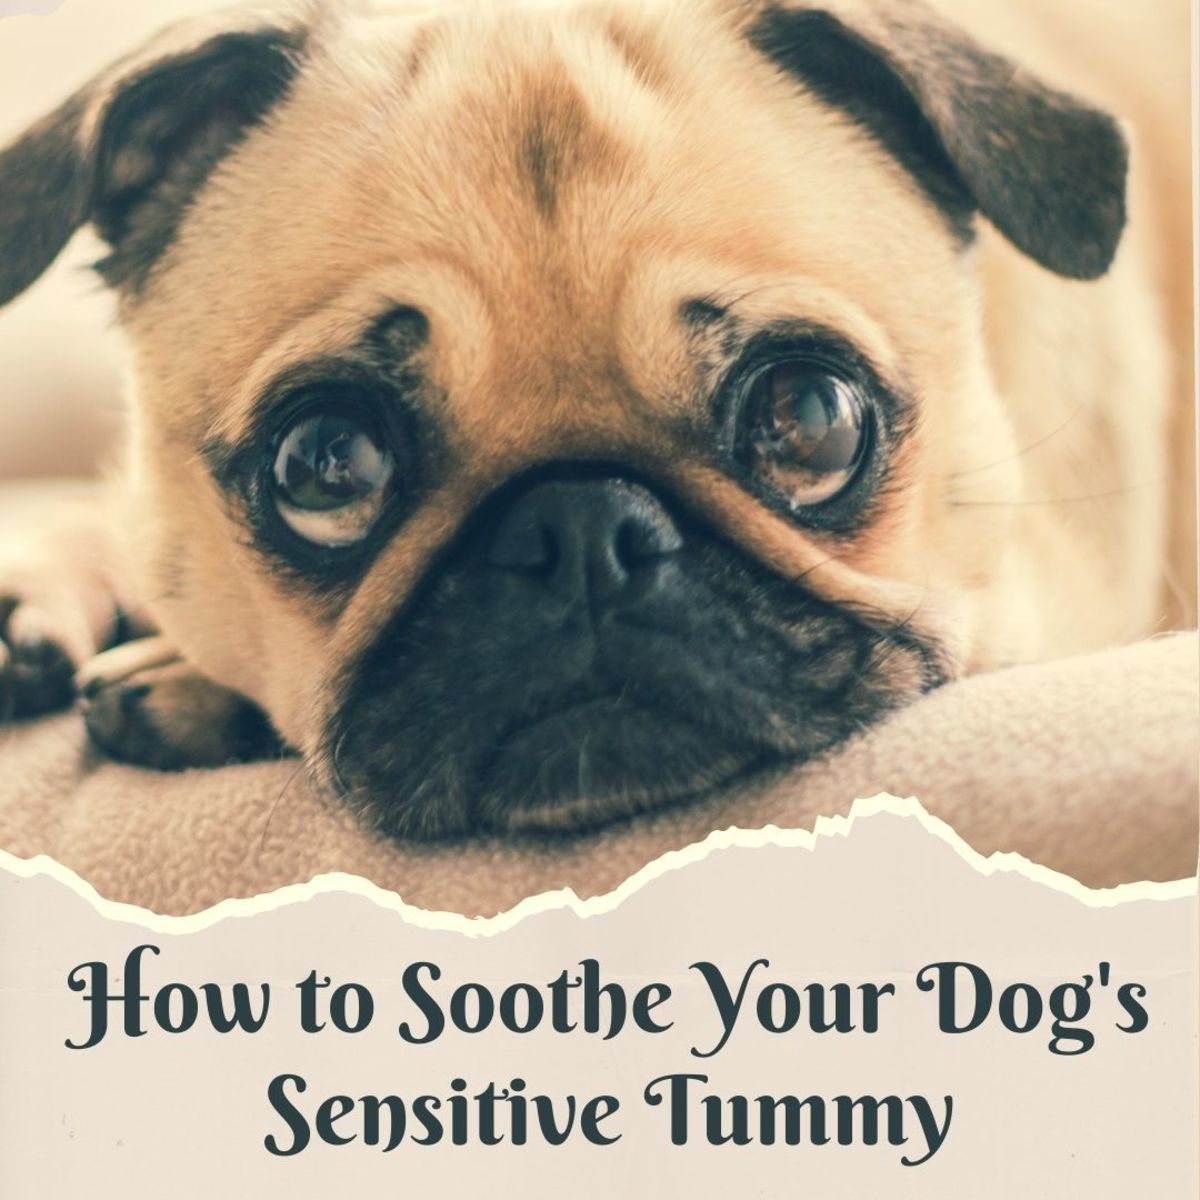 Dogs with sensitive stomachs